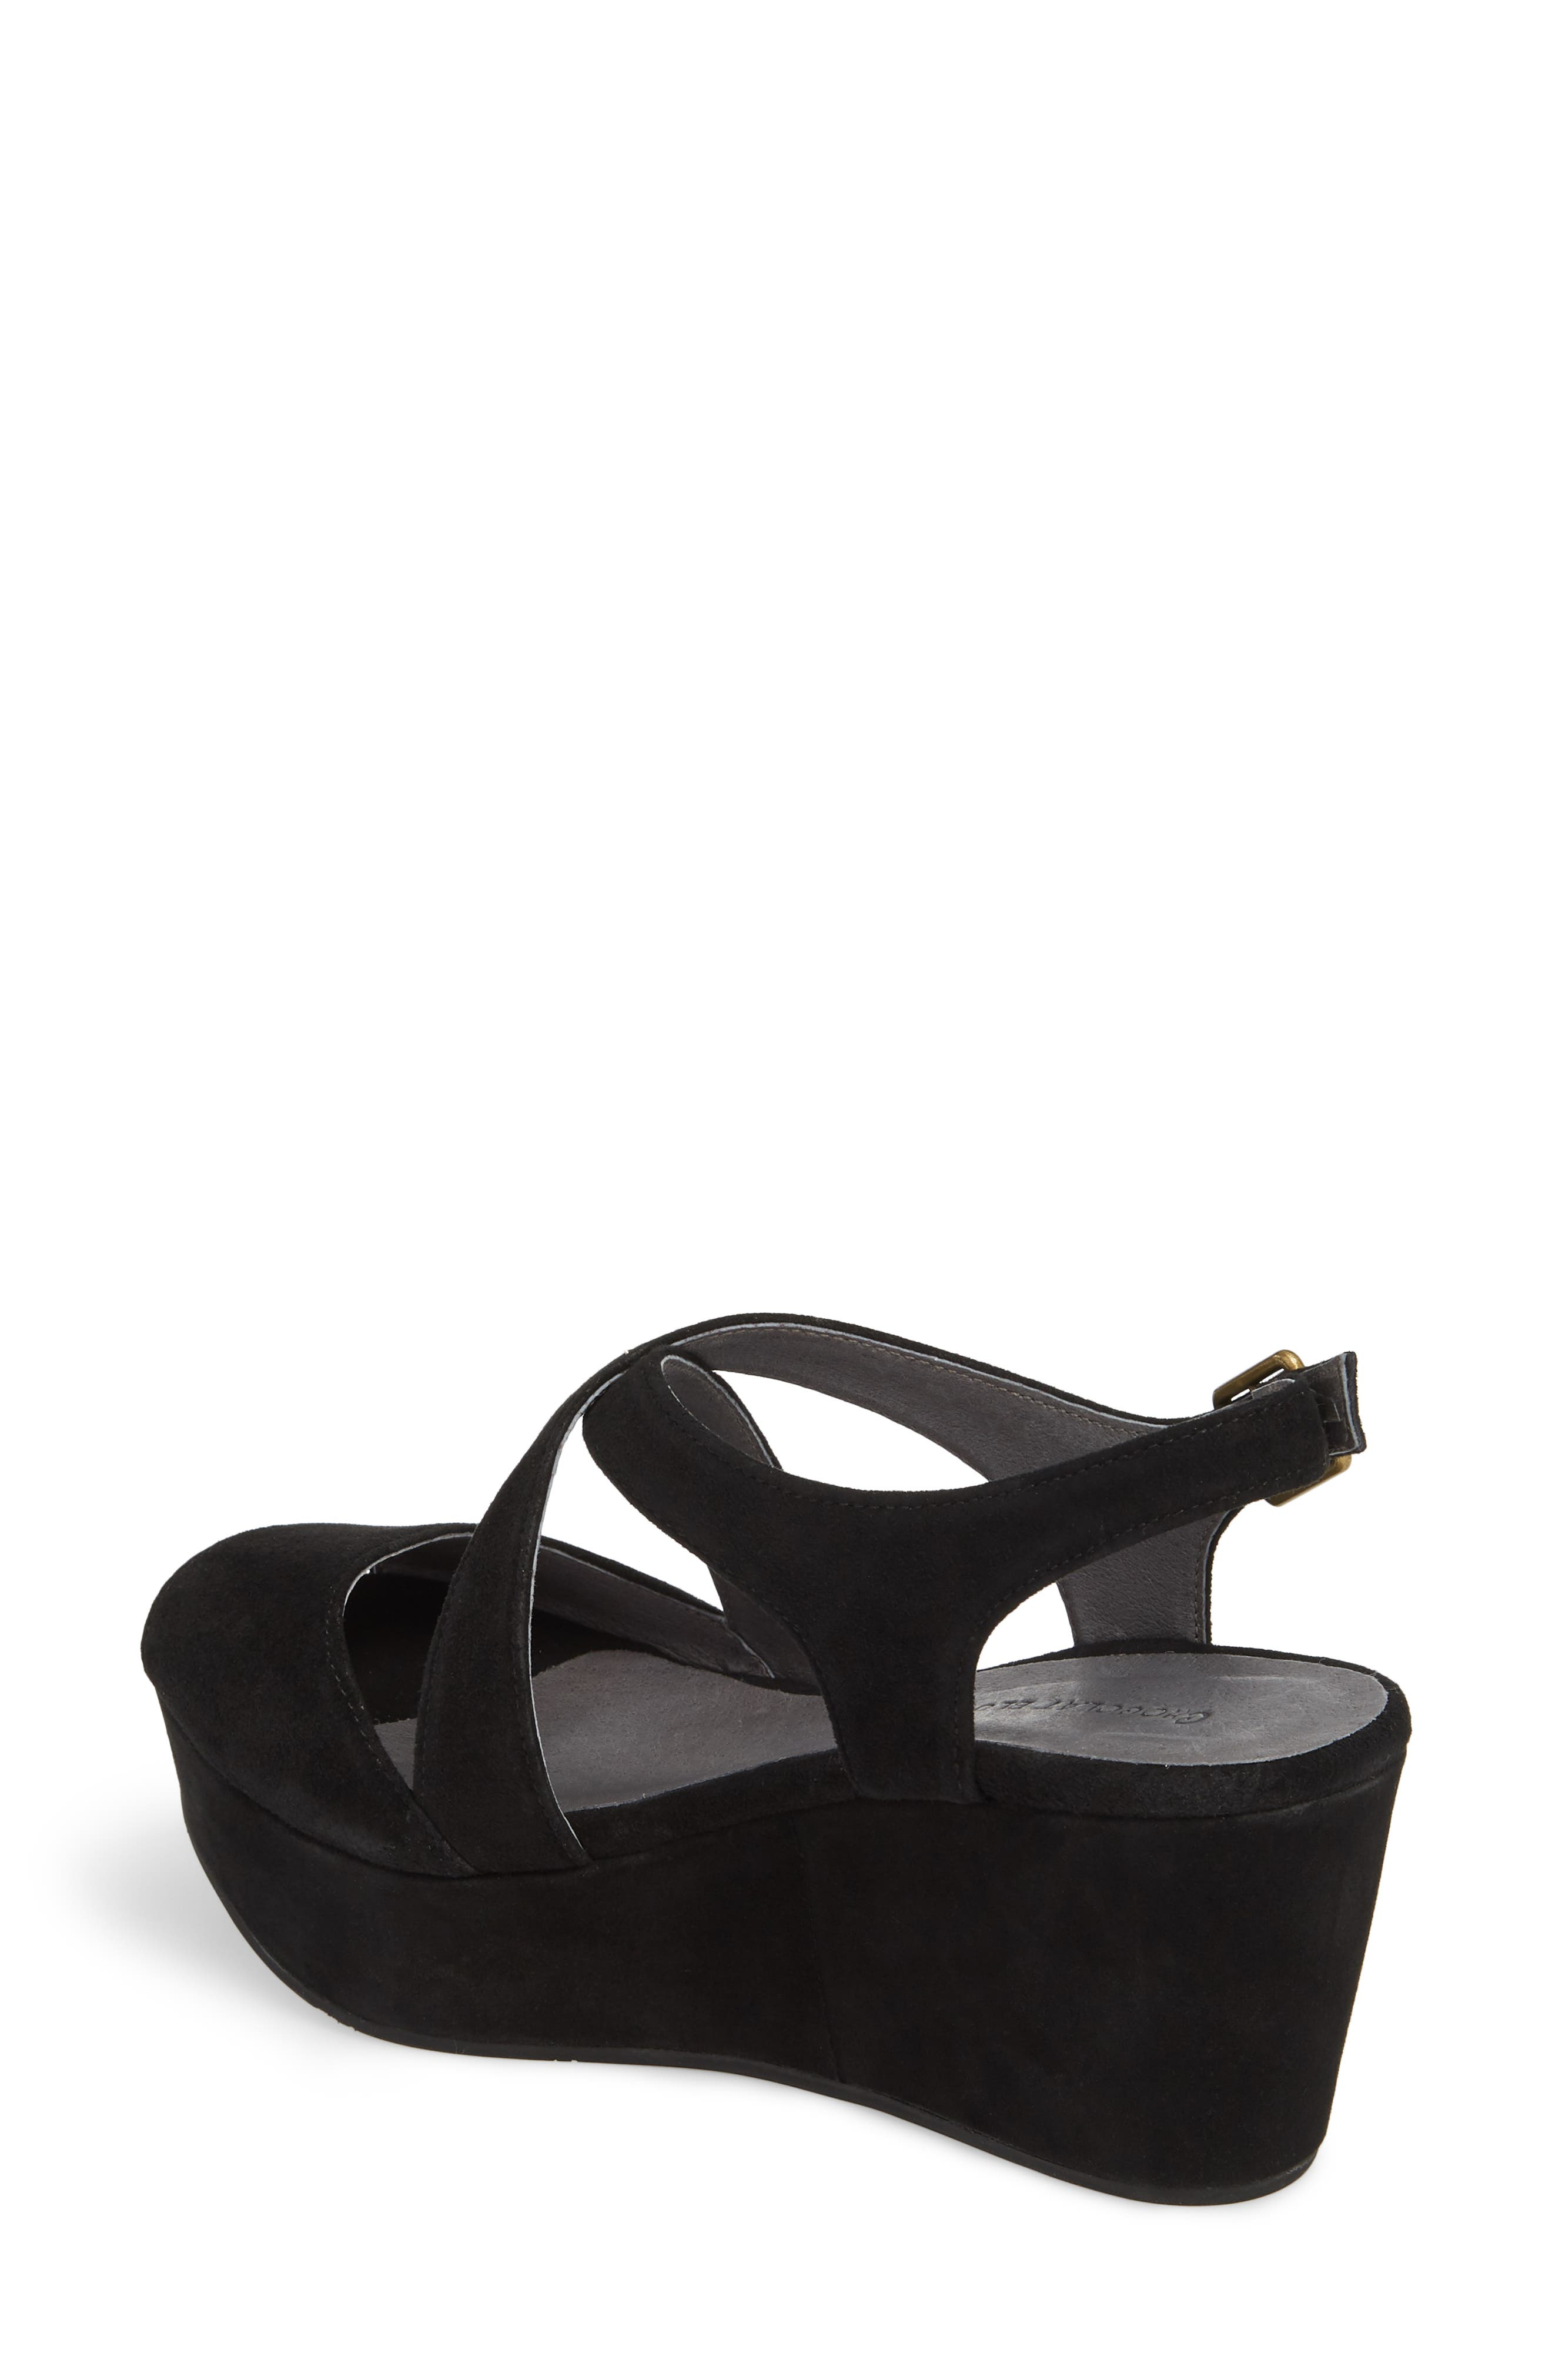 Winnie Wedge Sandal,                             Alternate thumbnail 2, color,                             BLACK SUEDE